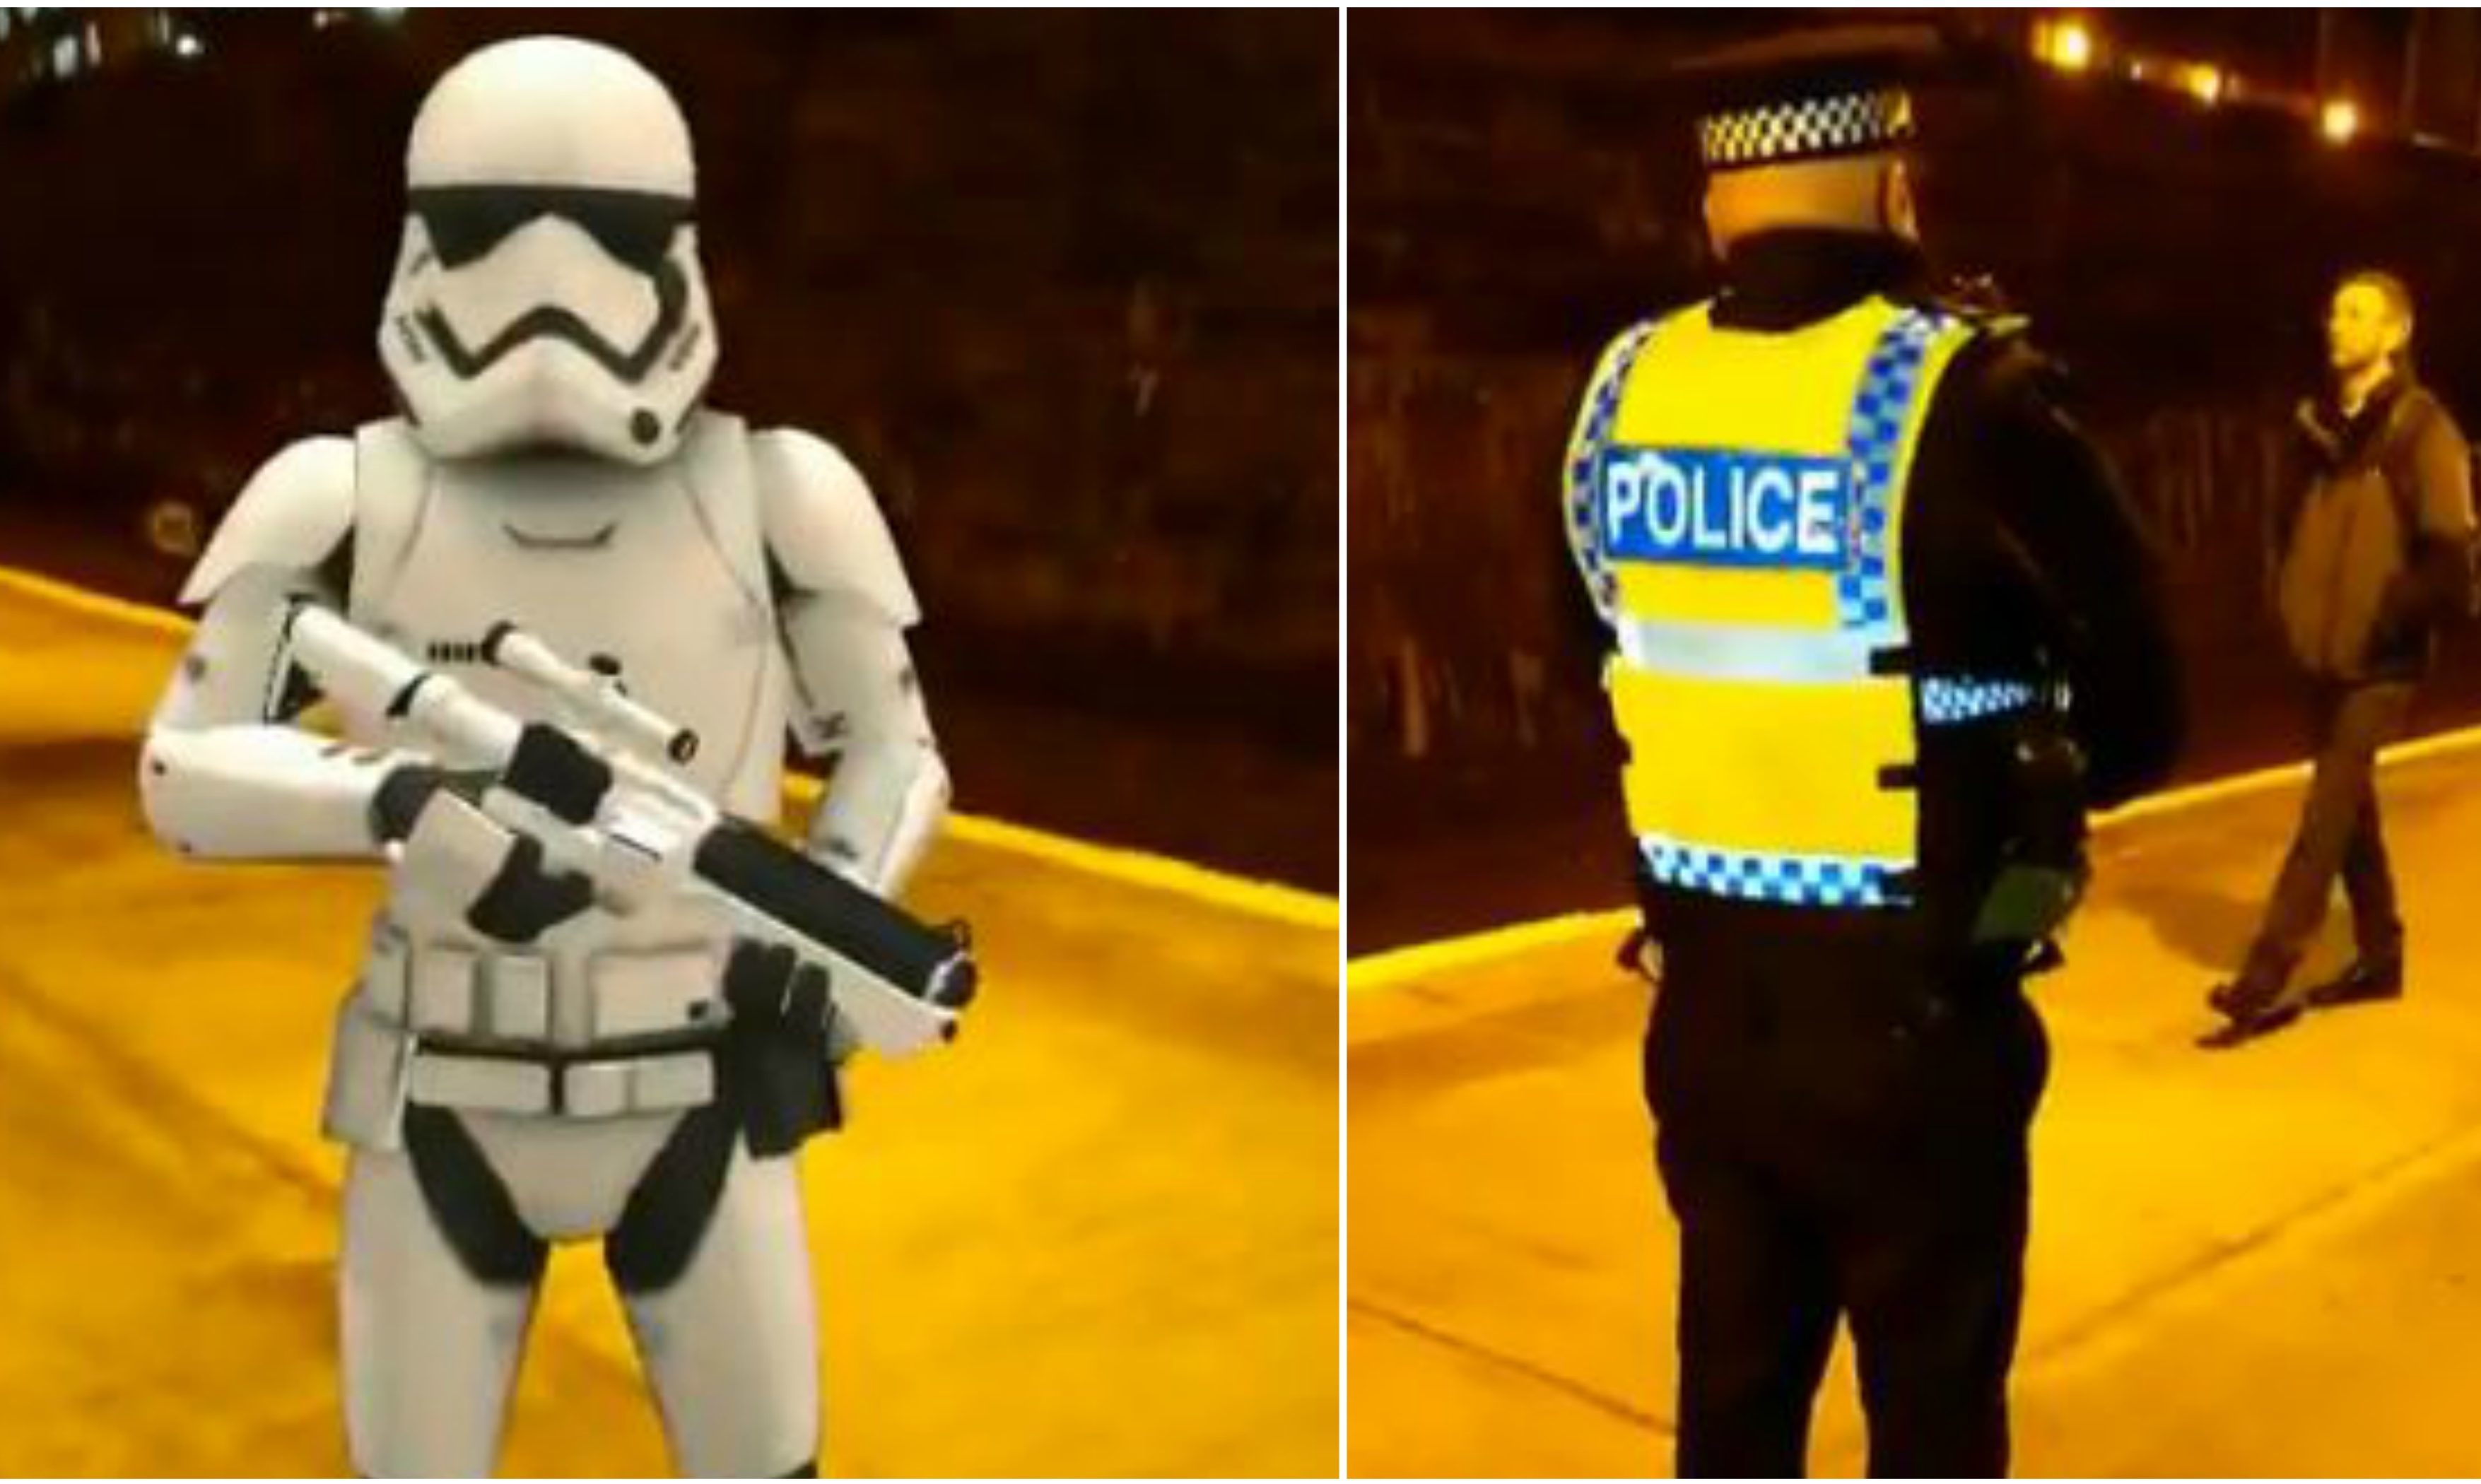 Stormtroopers patrolling Dundee Station